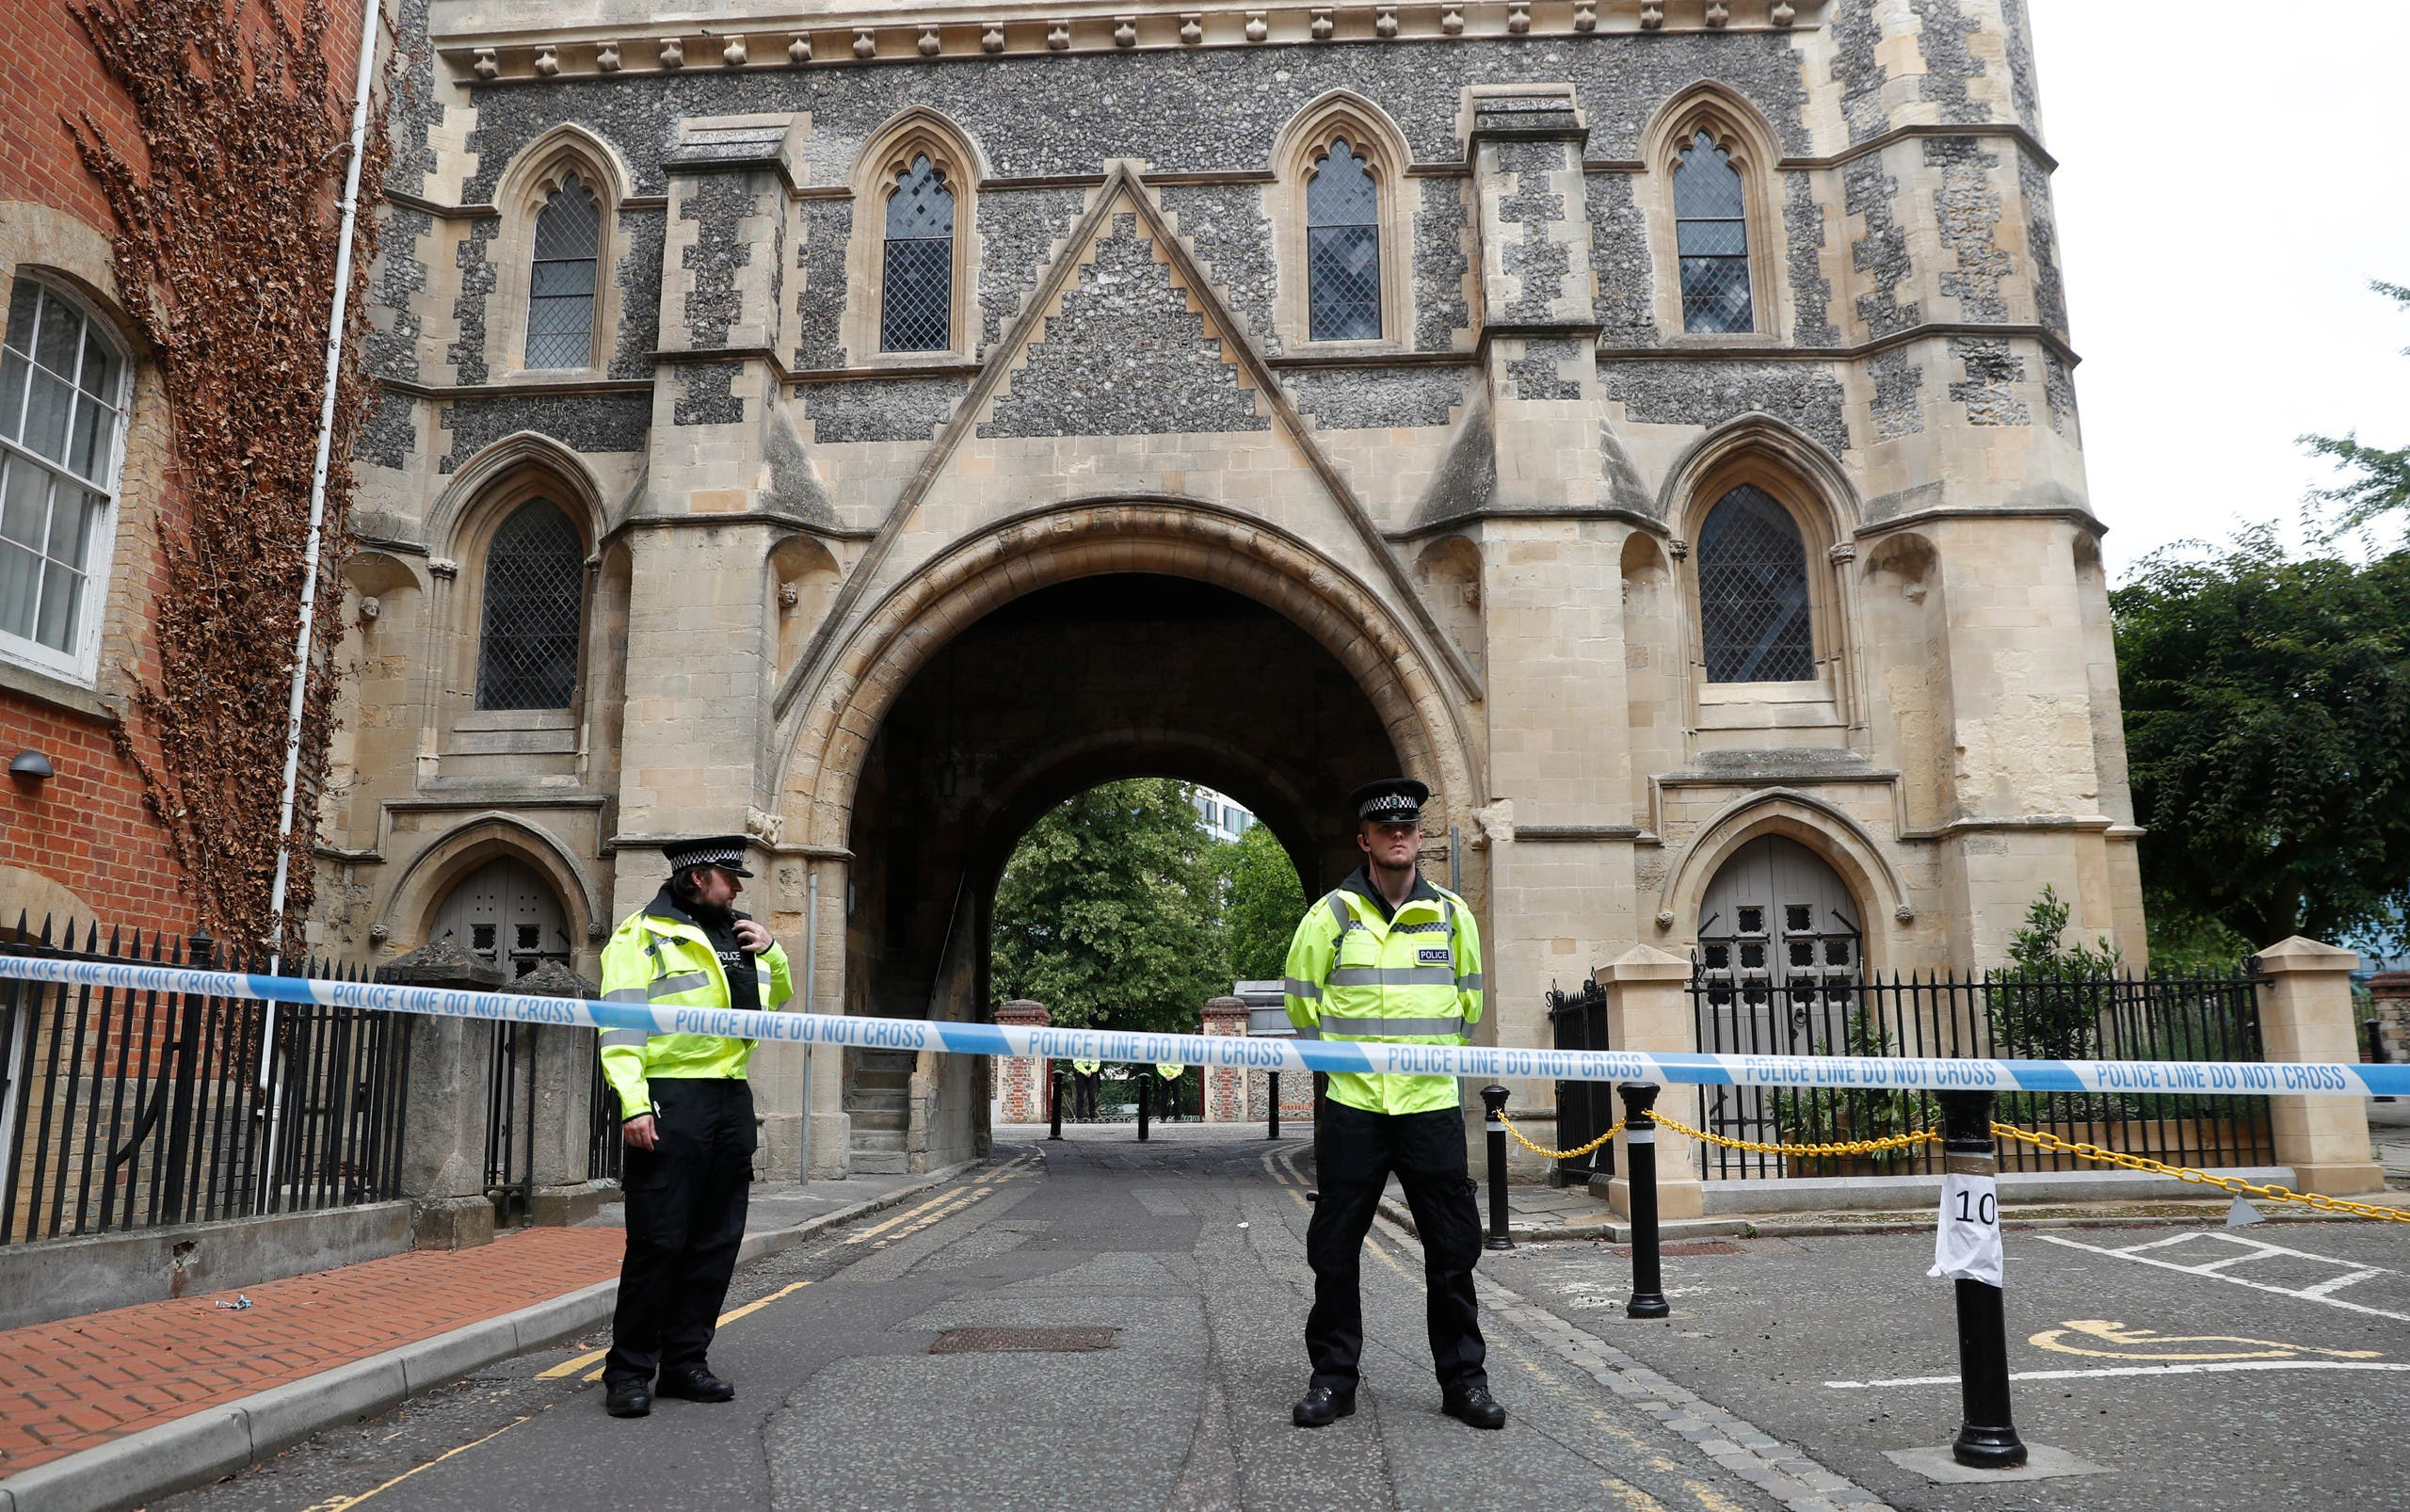 Police stand guard at the Abbey gateway of Forbury Gardens, a day after a multiple stabbing attack in the gardens in Reading, England on June 21, 2020. (AP)